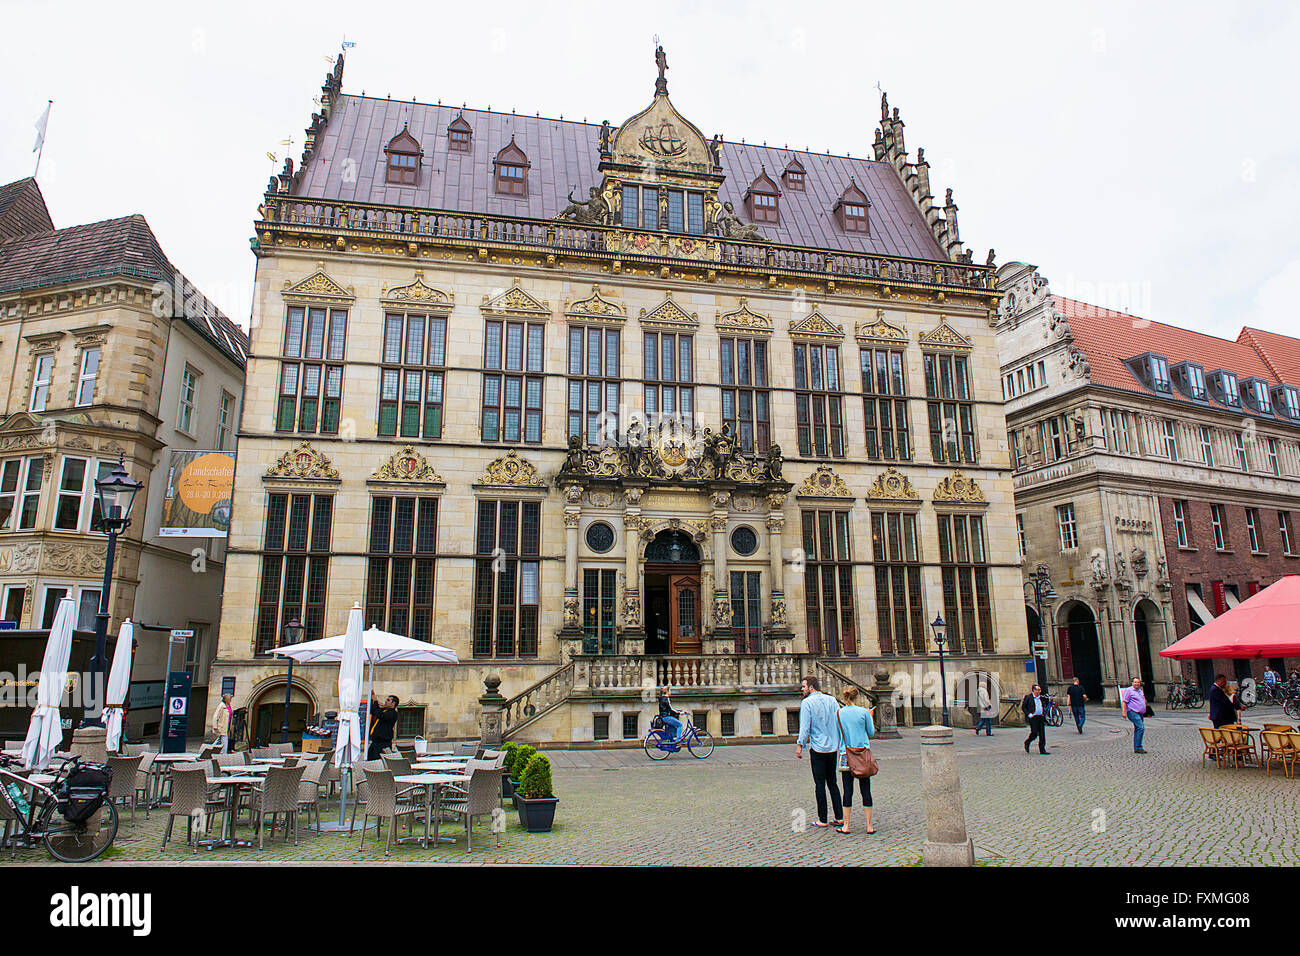 Bernen Chamber of Commerce, Bremen, Germany - Stock Image